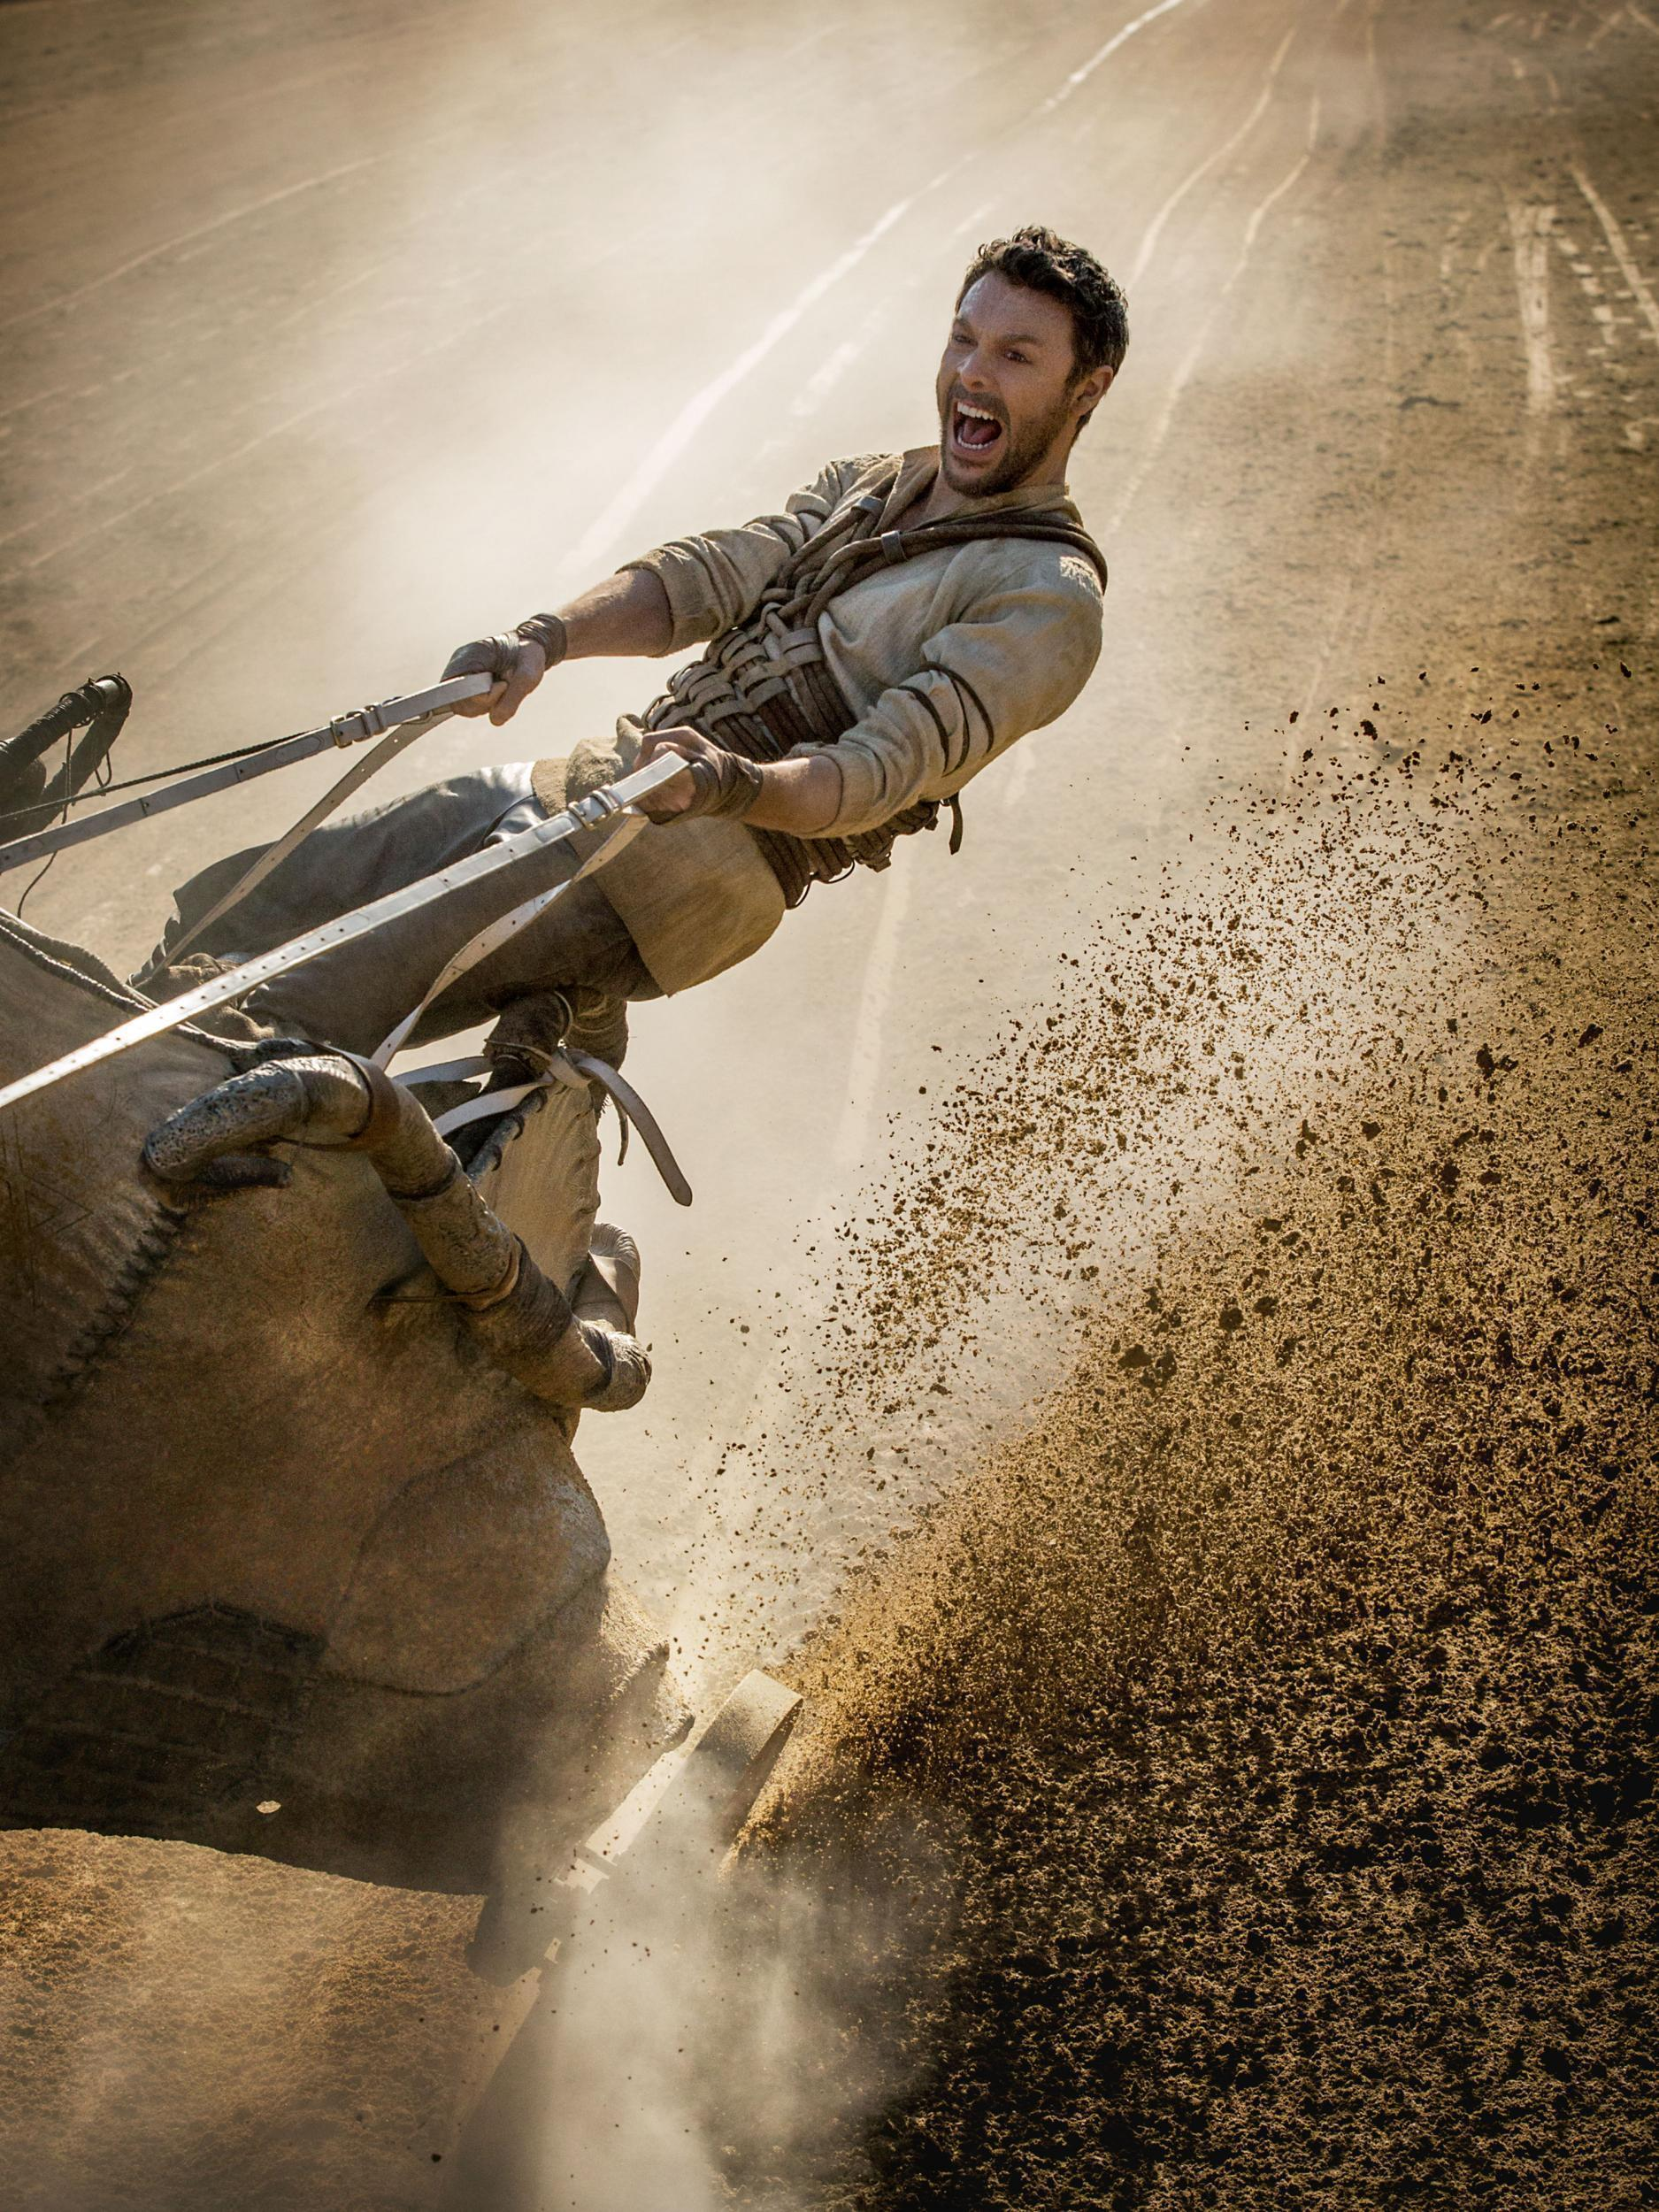 Epic fail: why a new Ben-Hur can never be a truly epic movie | The Independentindependent_brand_ident_LOGOUntitled